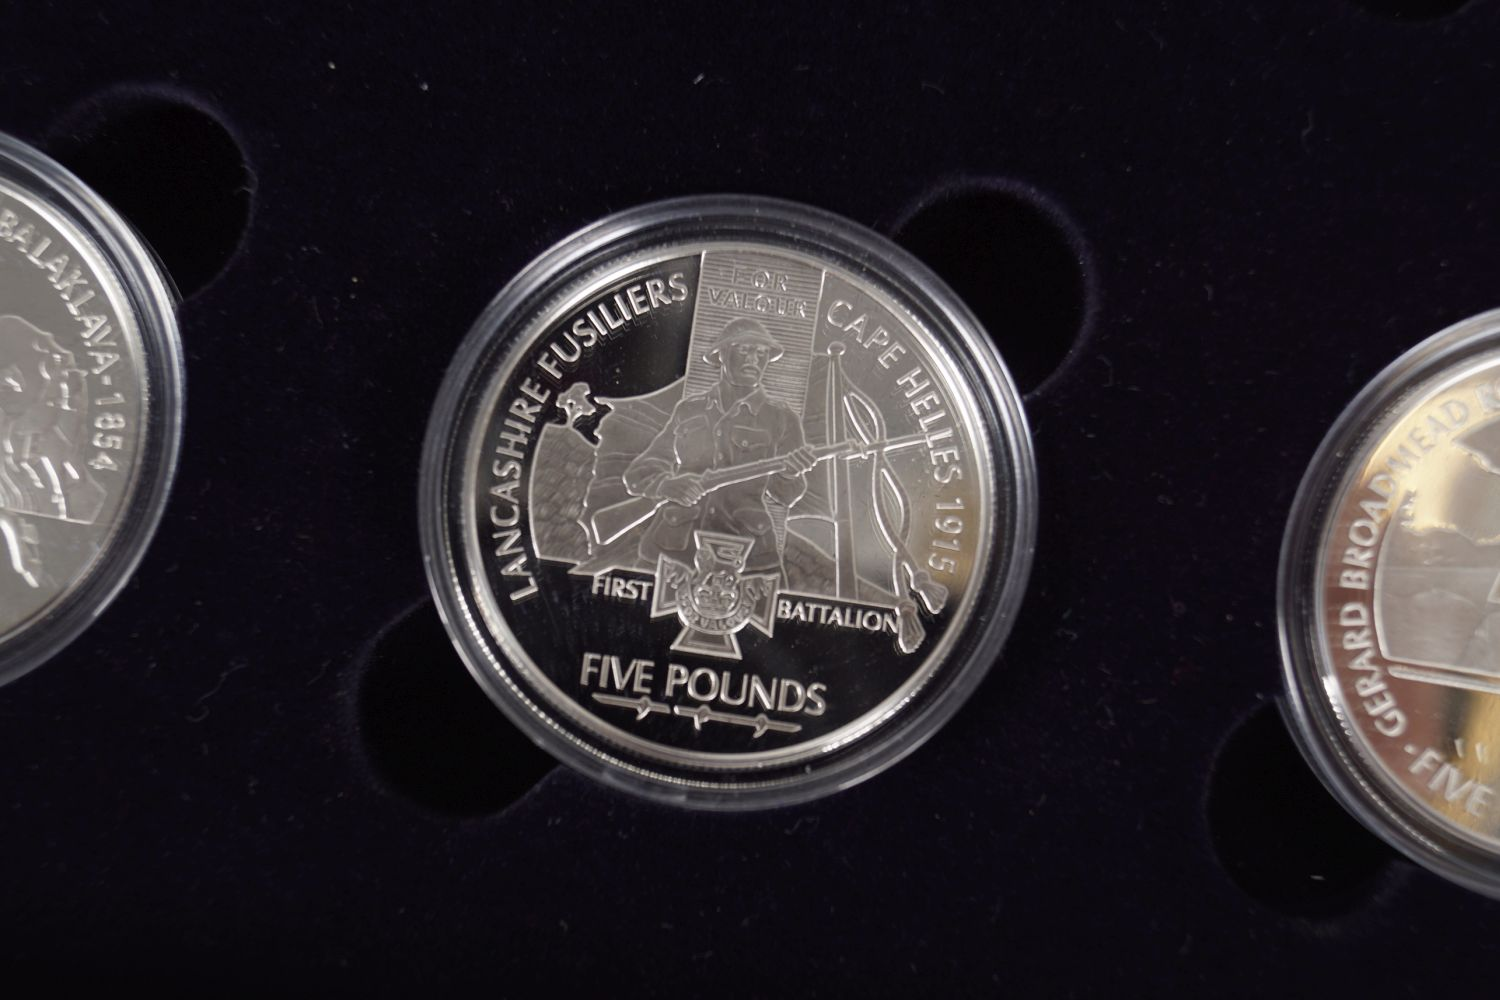 18 SILVER VC - Image 5 of 6